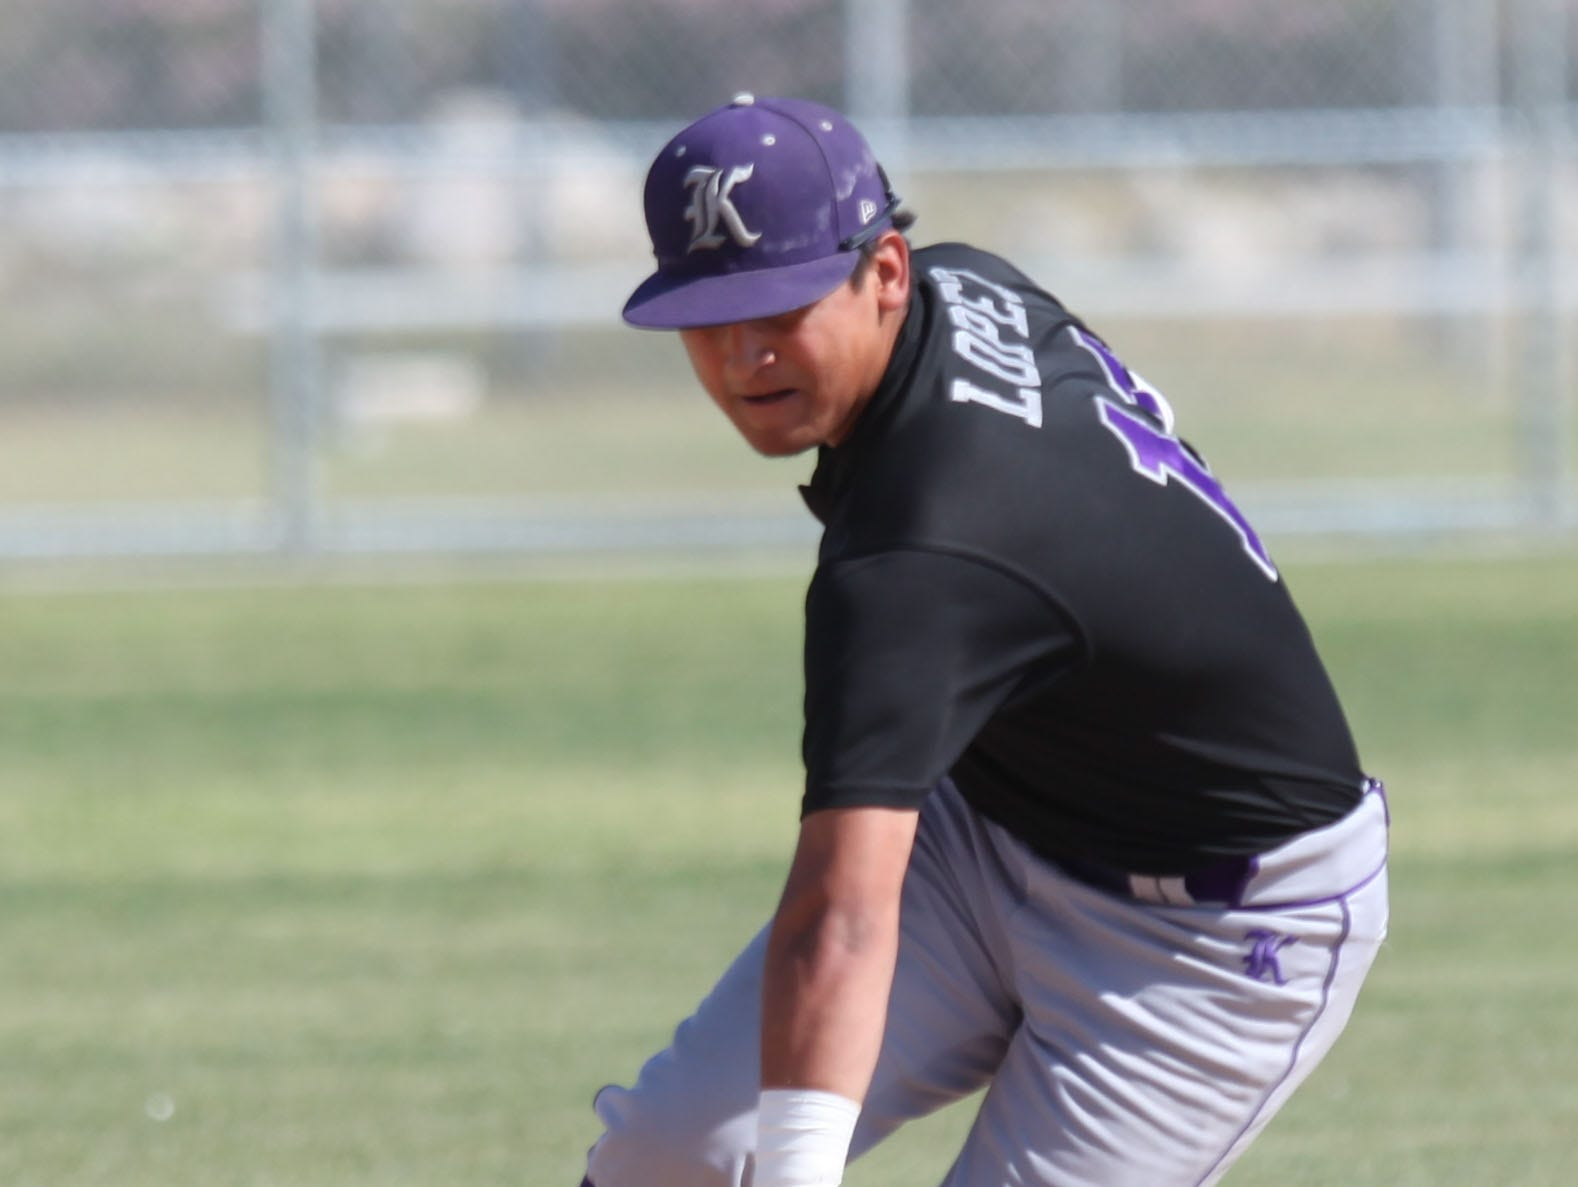 Alex Lopez, playing shortstop for Shadow Hills High School makes a play against Desert Hot Springs High School at Desert Hot Springs. Shadow Hills won the game.